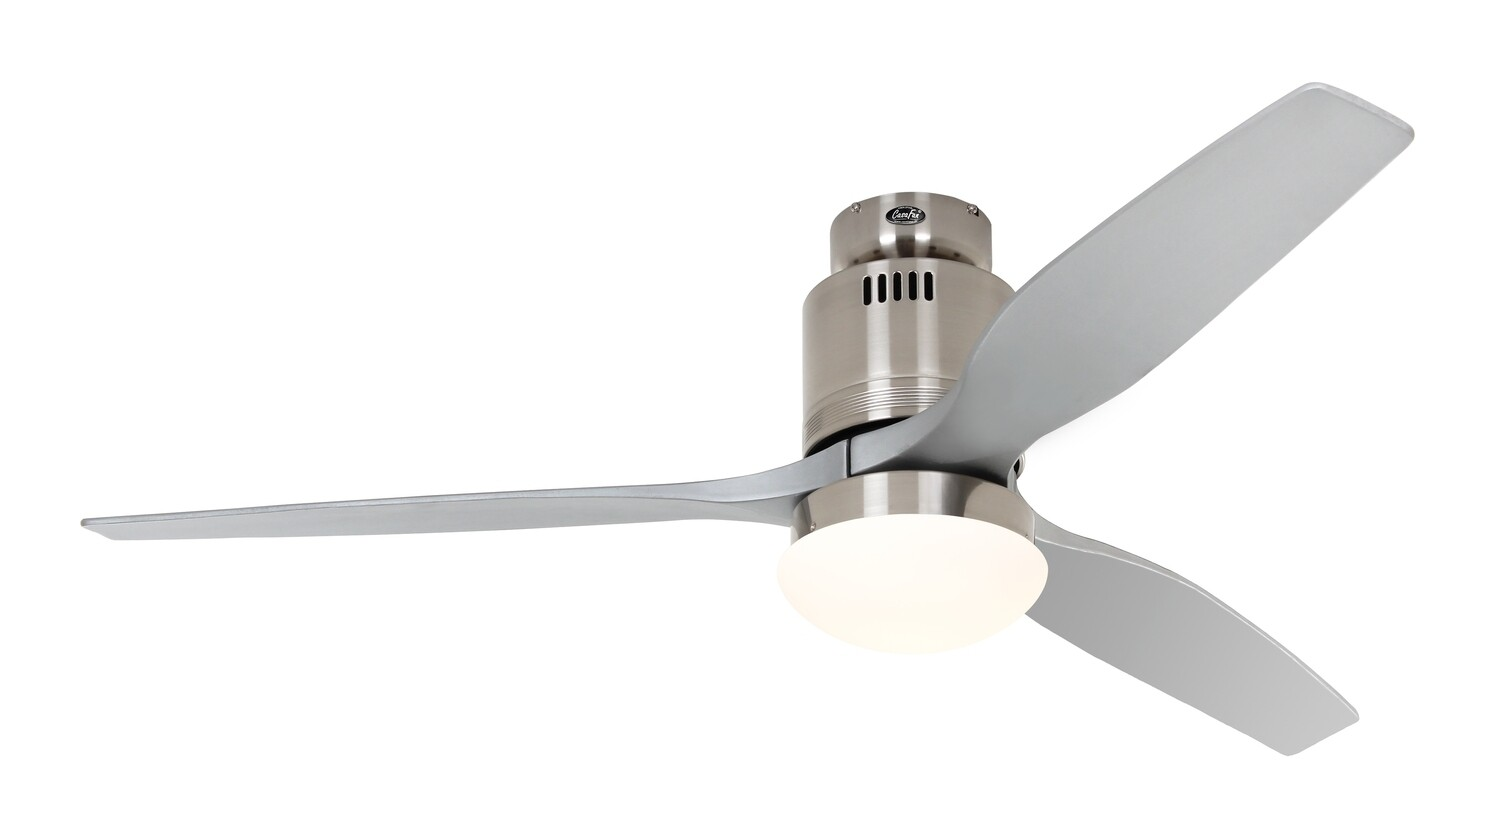 AERODYNAMIX ECO BN energy saving ceiling fan by CASAFAN Ø132  with light kit and remote control included - Brushed Chrome / Silver Grey